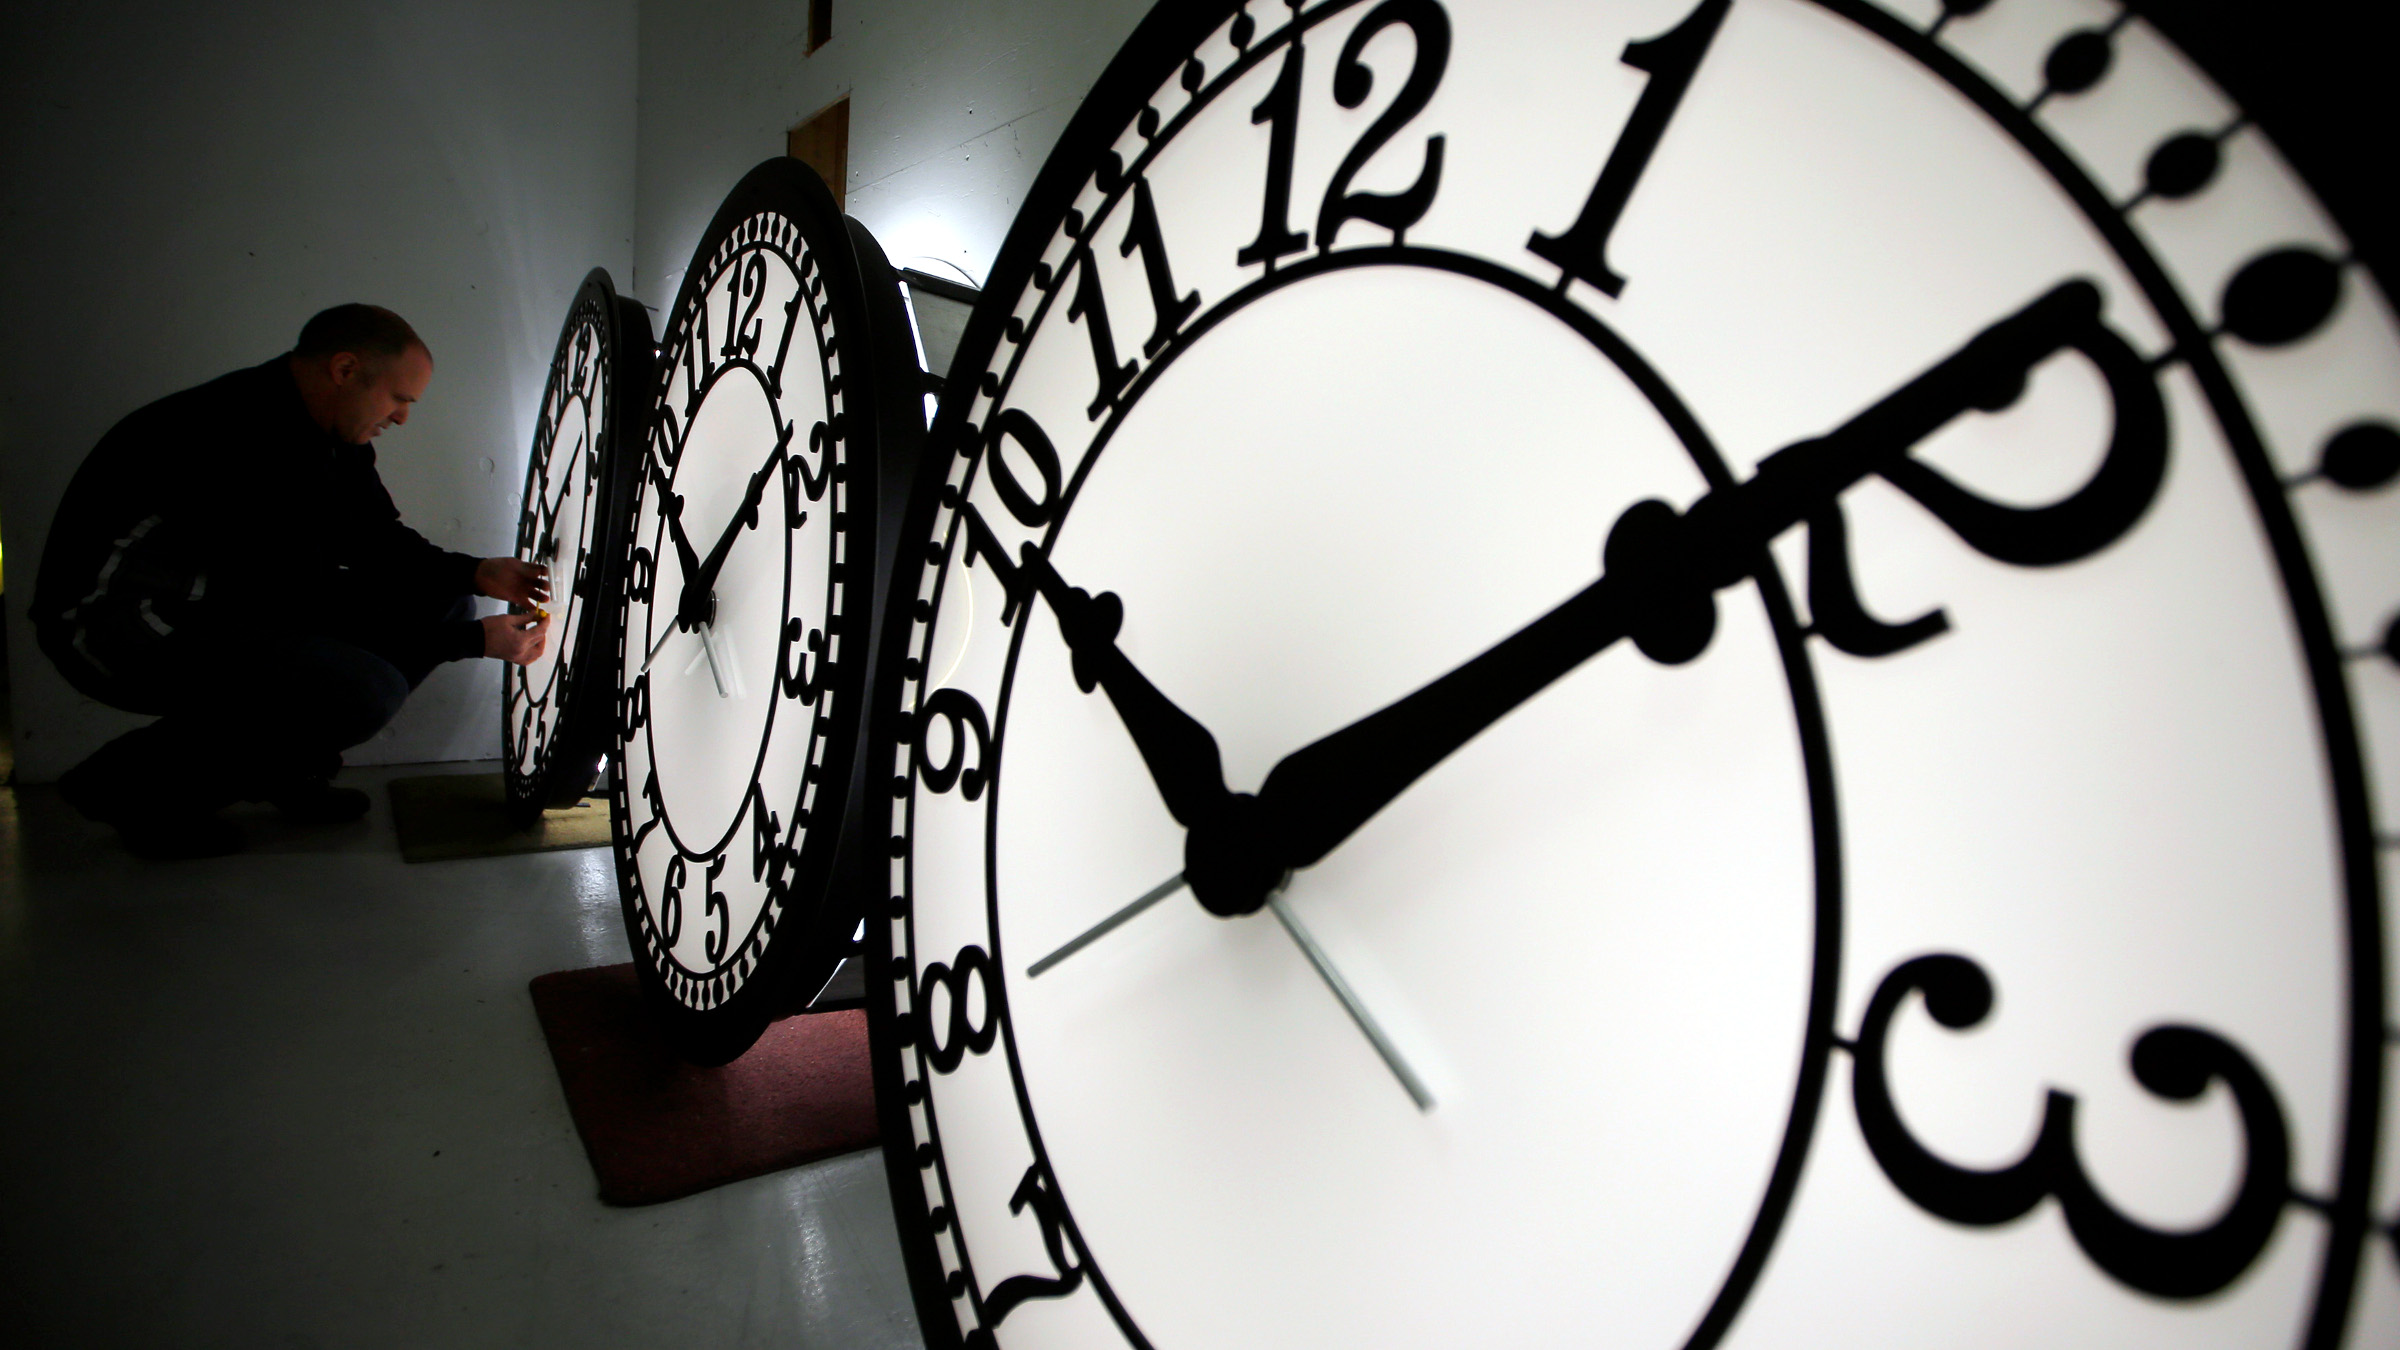 Peter Shugrue checks one of four custom, flush mounted clocks, destined for installation in Kansas City, Missouri, at the Electric Time Company factory in Medfield, Massachusetts March 8, 2013. Daylight saving time begins in the United States at 02:00 AM March 10.